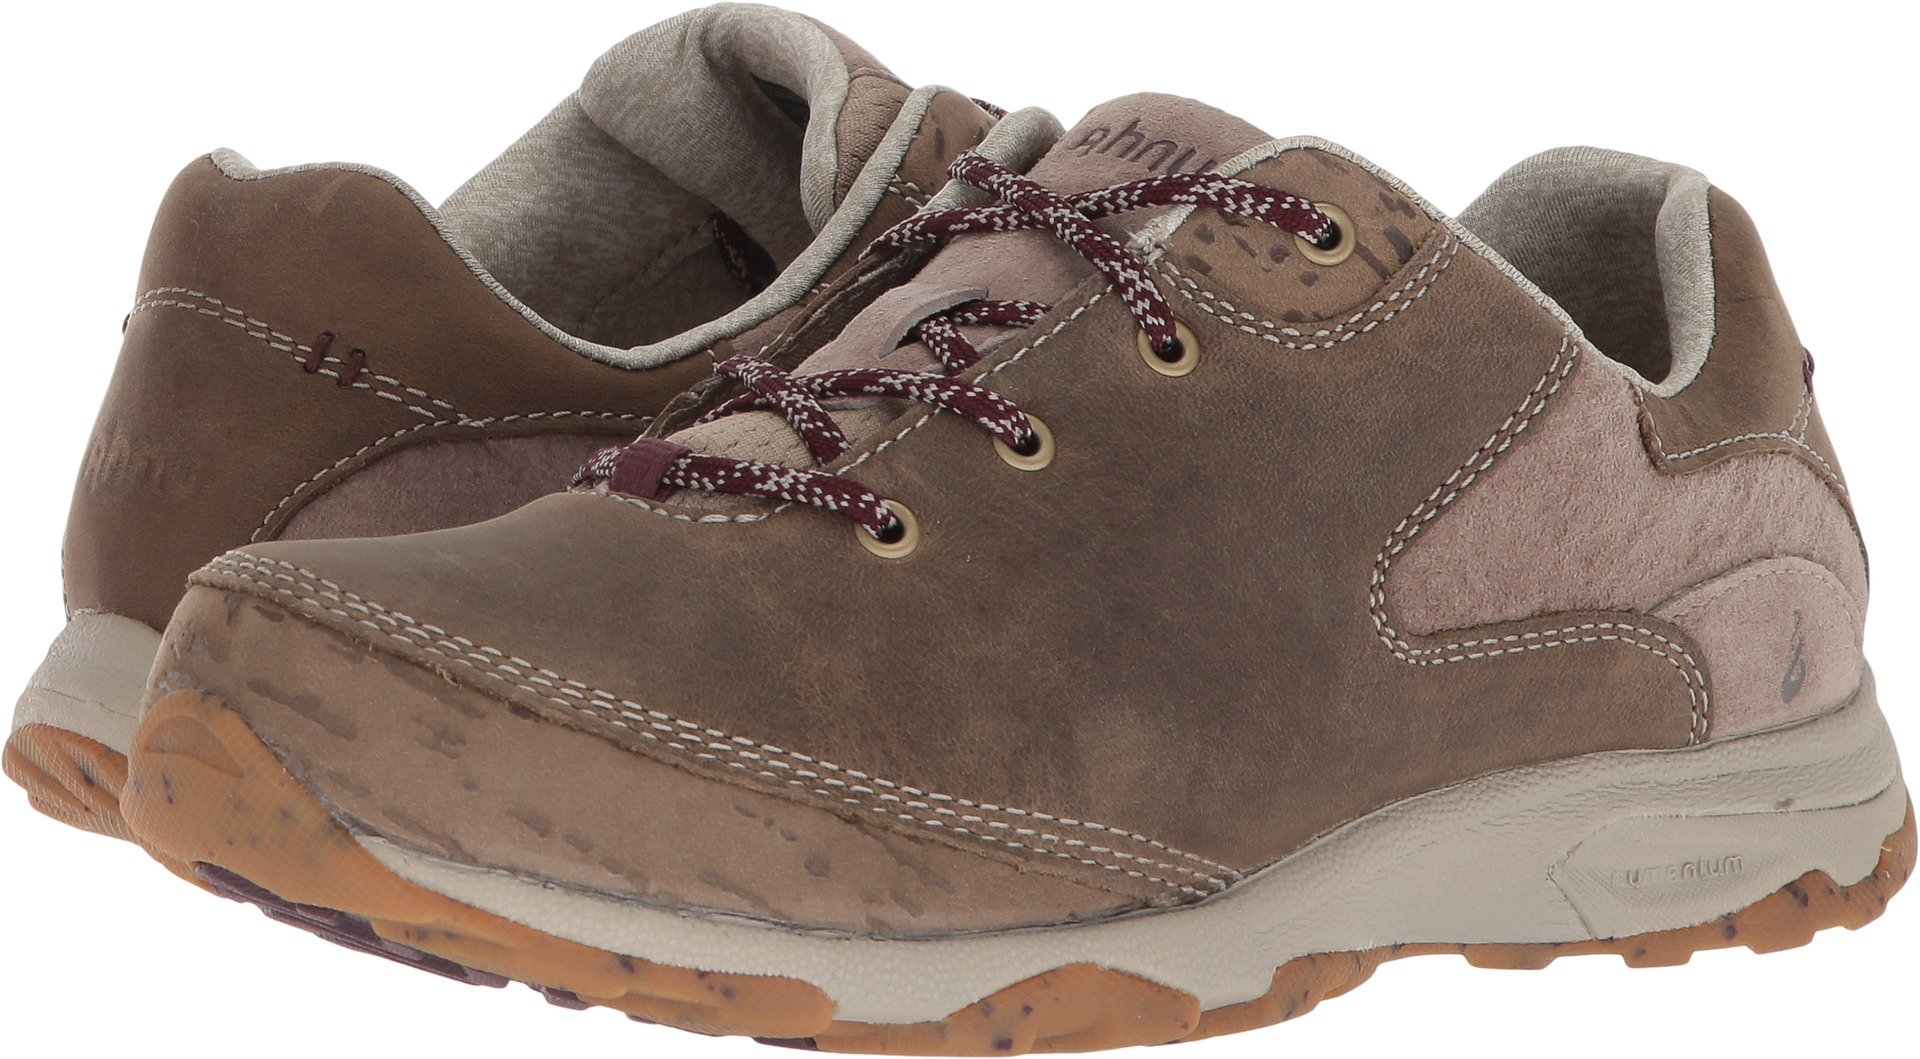 Ahnu Women's W Sugar Venture Lace Hiking Boot, Smoke Timber, 8 Medium US by Ahnu